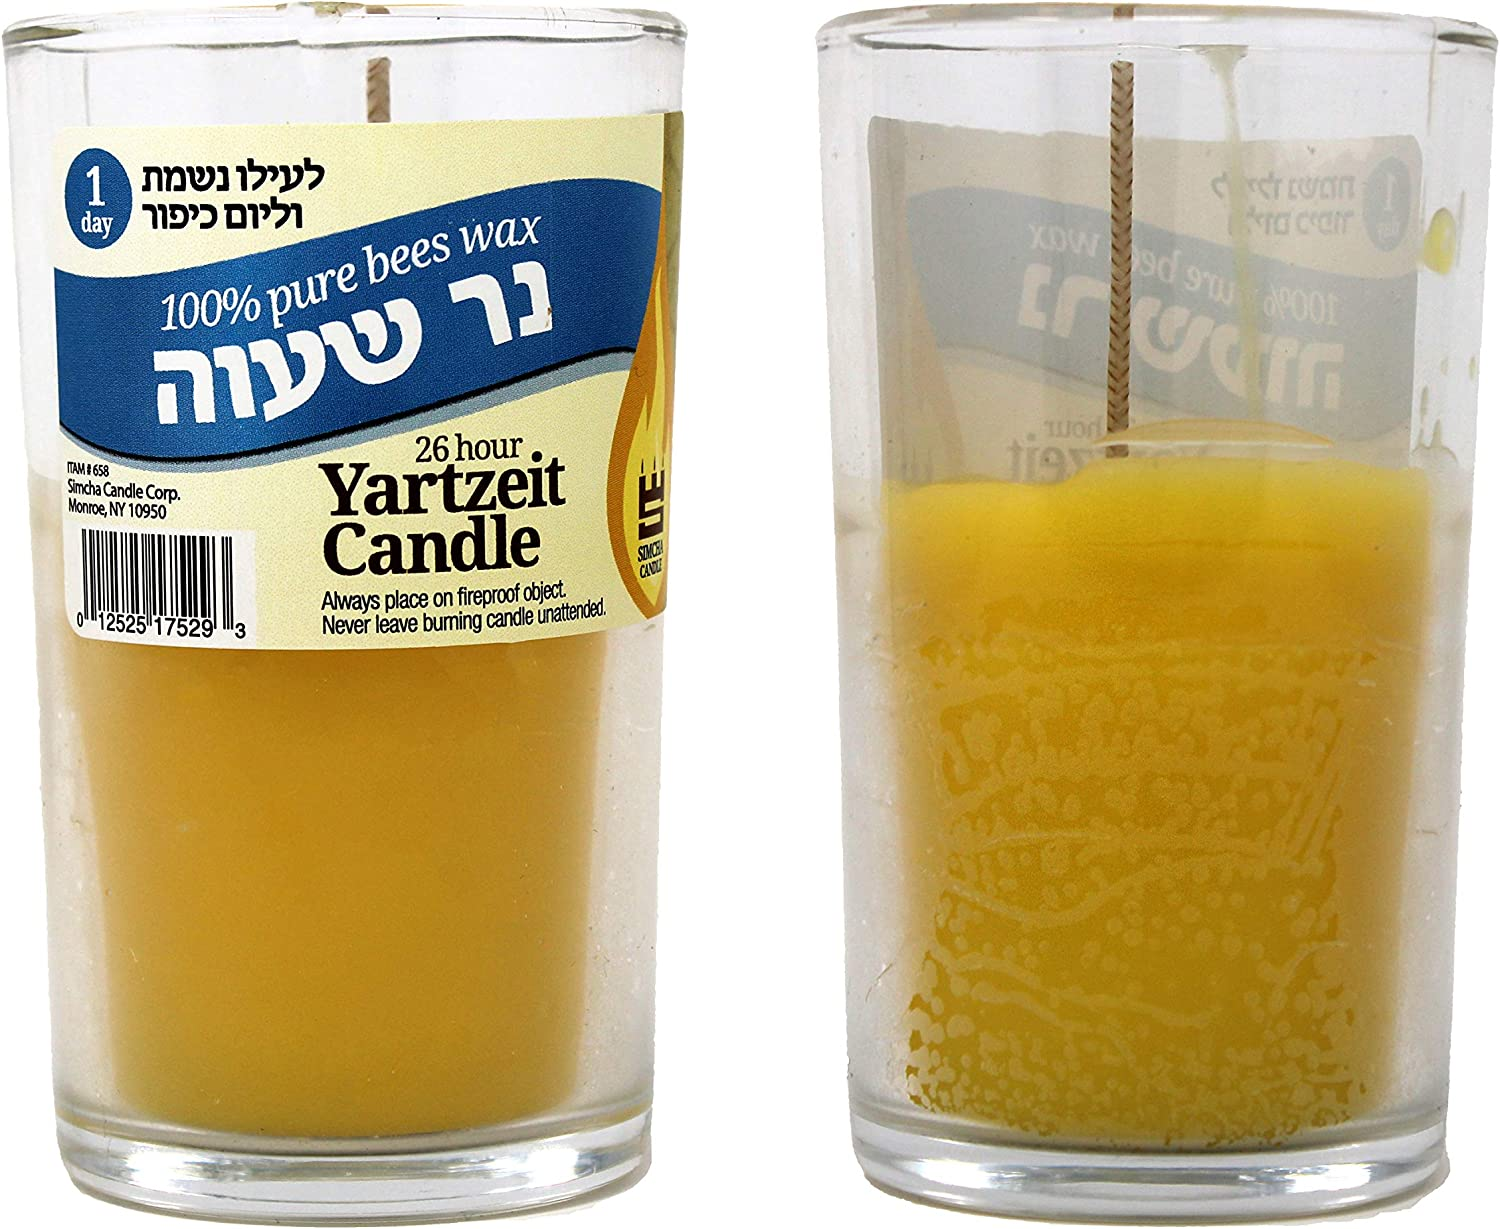 RAMBUE 24 Hour Pure Beeswax yartzeit Candle in Glass jar - Religious Memorial and yom kippur yizkor Kosher Wax Candles 2 Pack